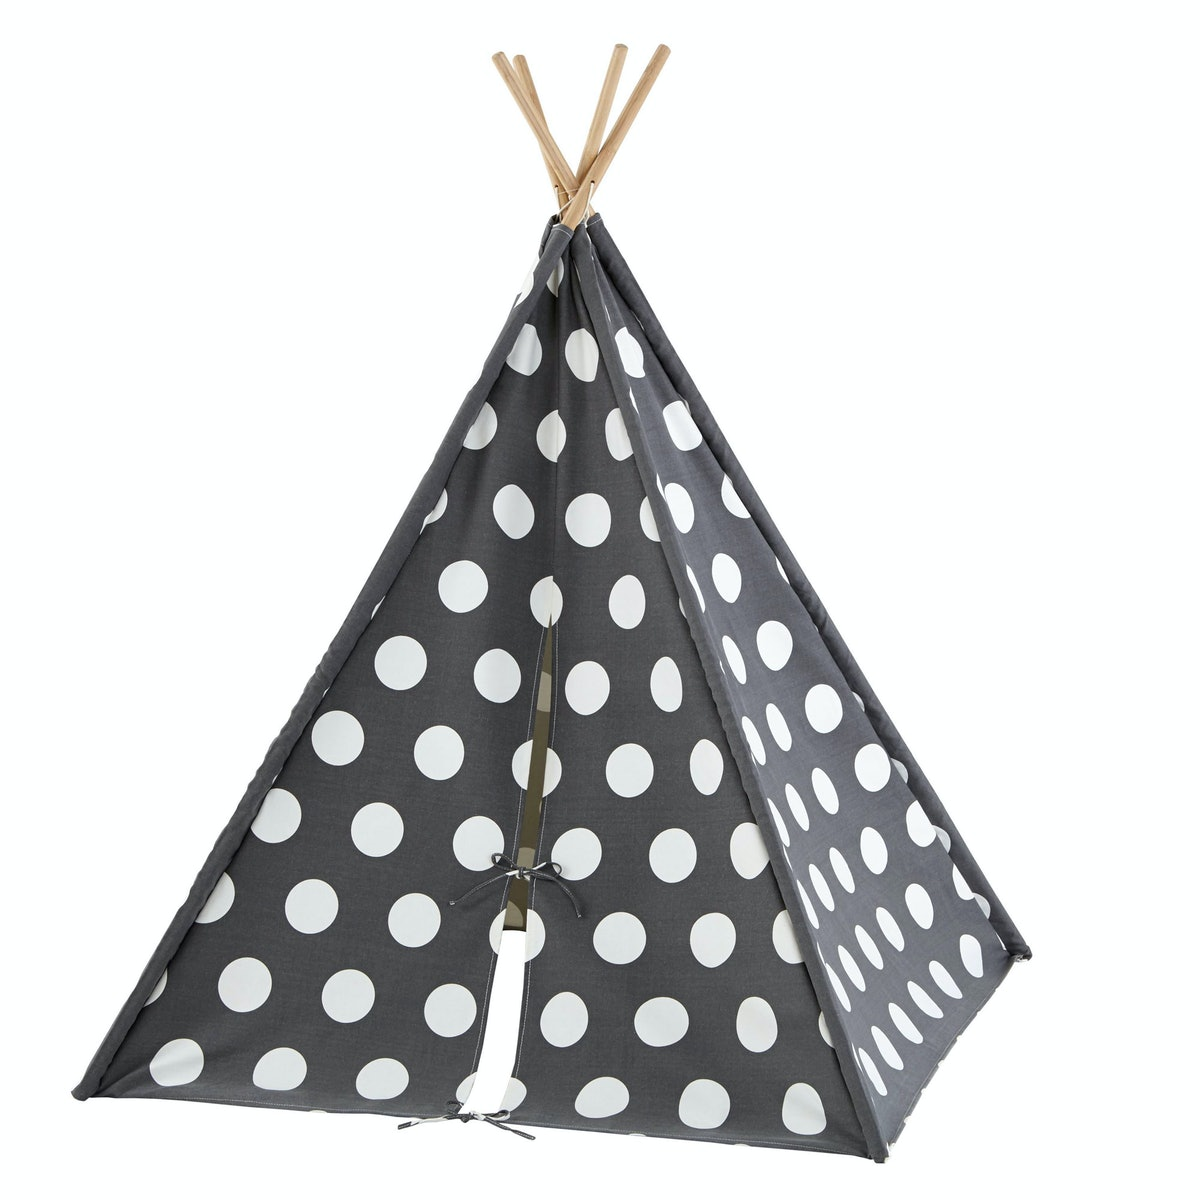 The Land of Nod teepee, $159, [landofnod.com](http://www.landofnod.com/a-teepee-to-call-your-own-grey-and-white-dot/f13154).